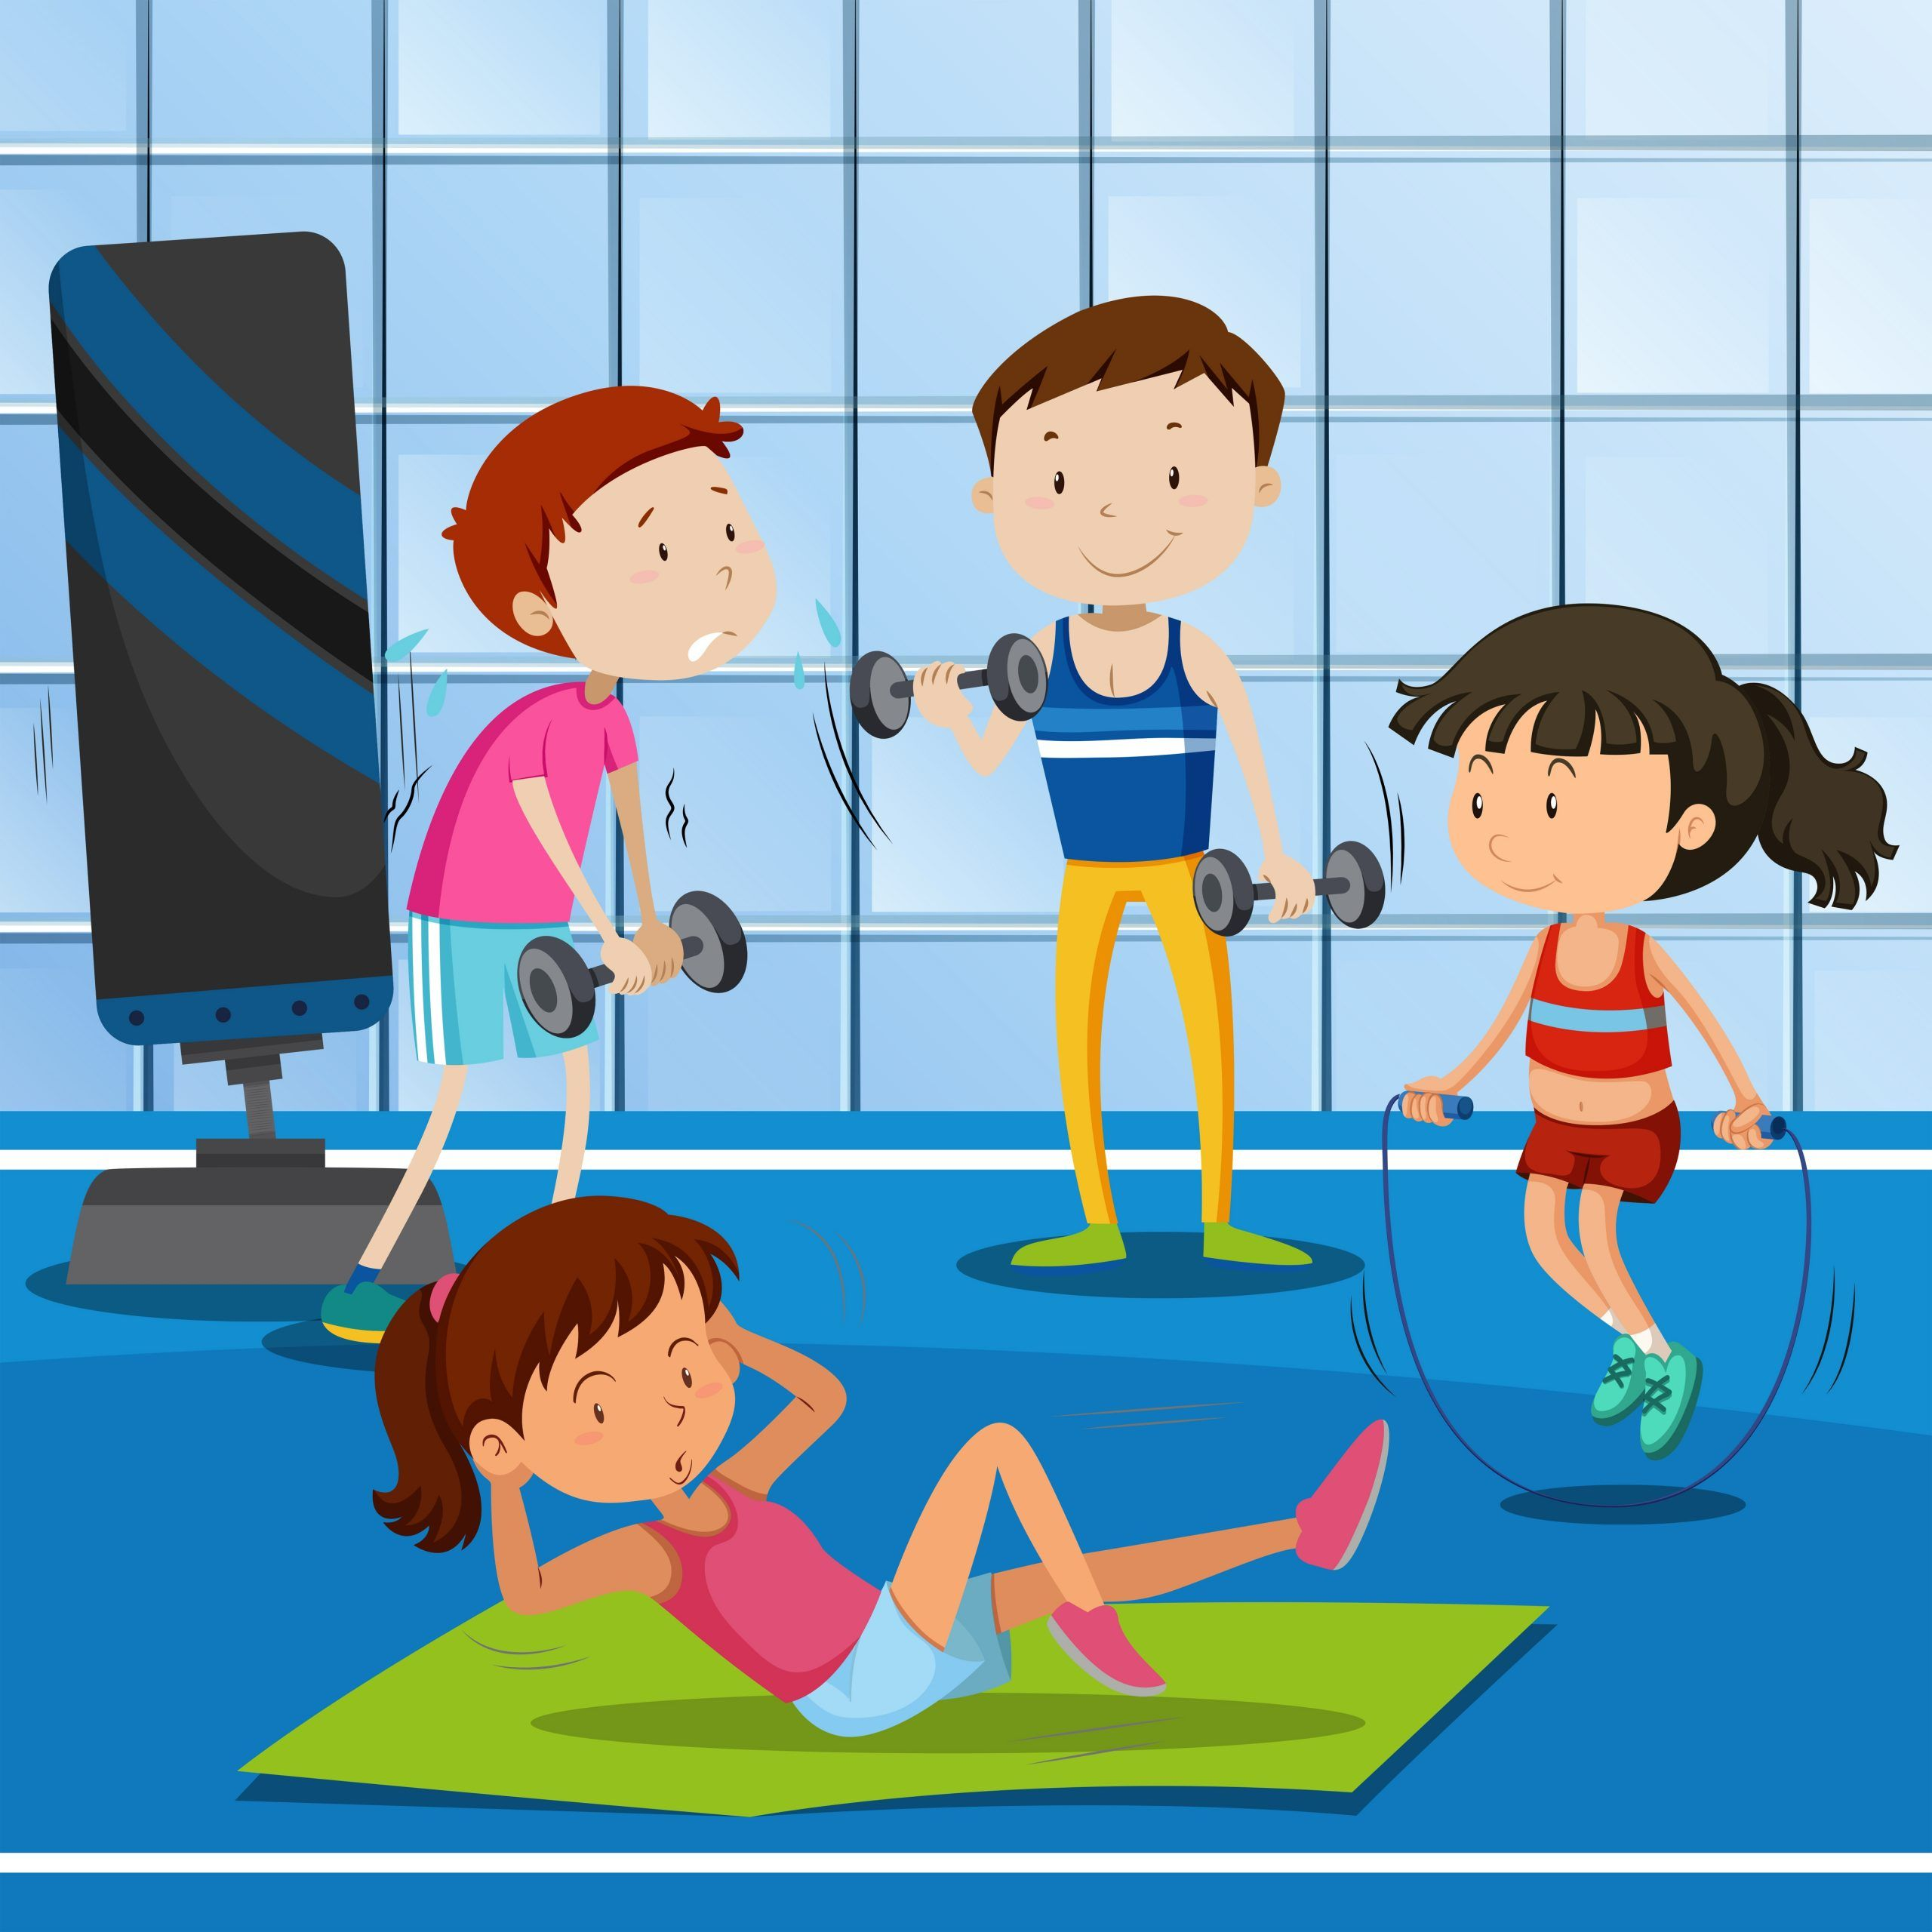 Gym Clipart In 2021 Gym Clip Art Workout